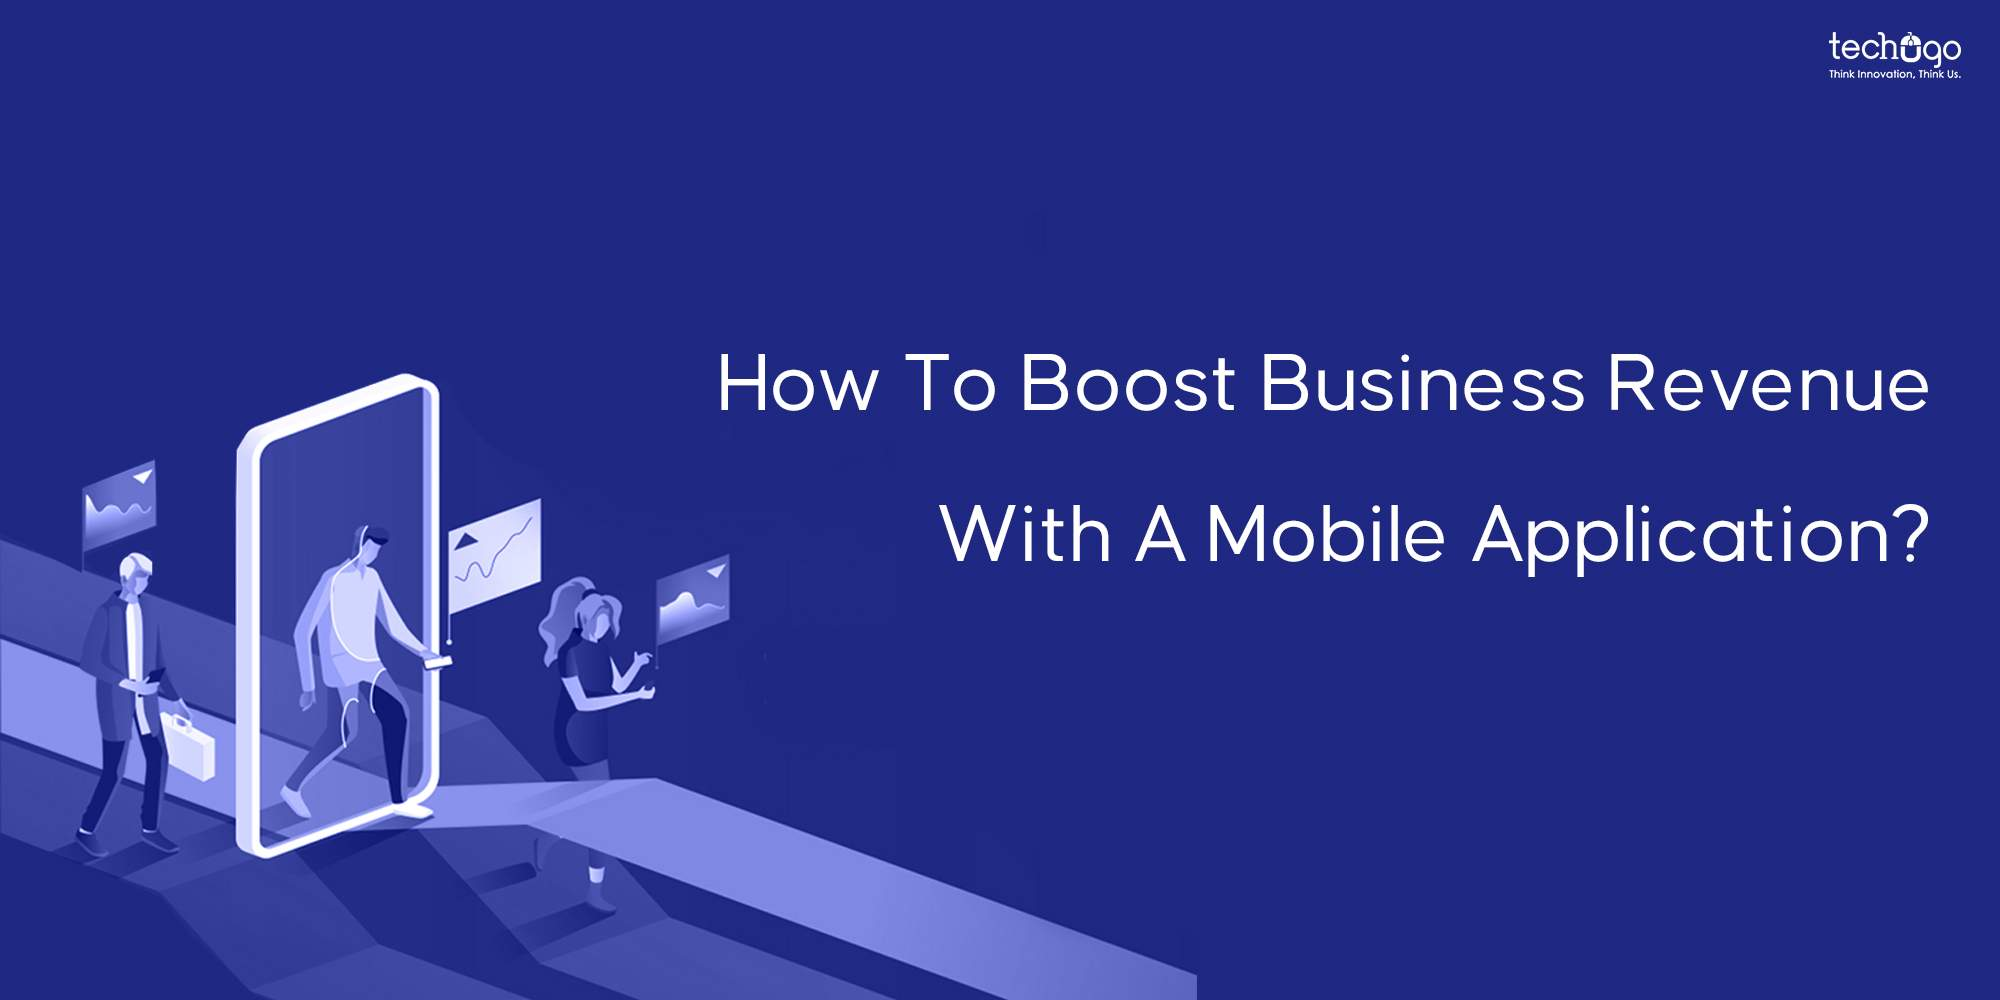 How To Boost Business Revenue With A Mobile Application?